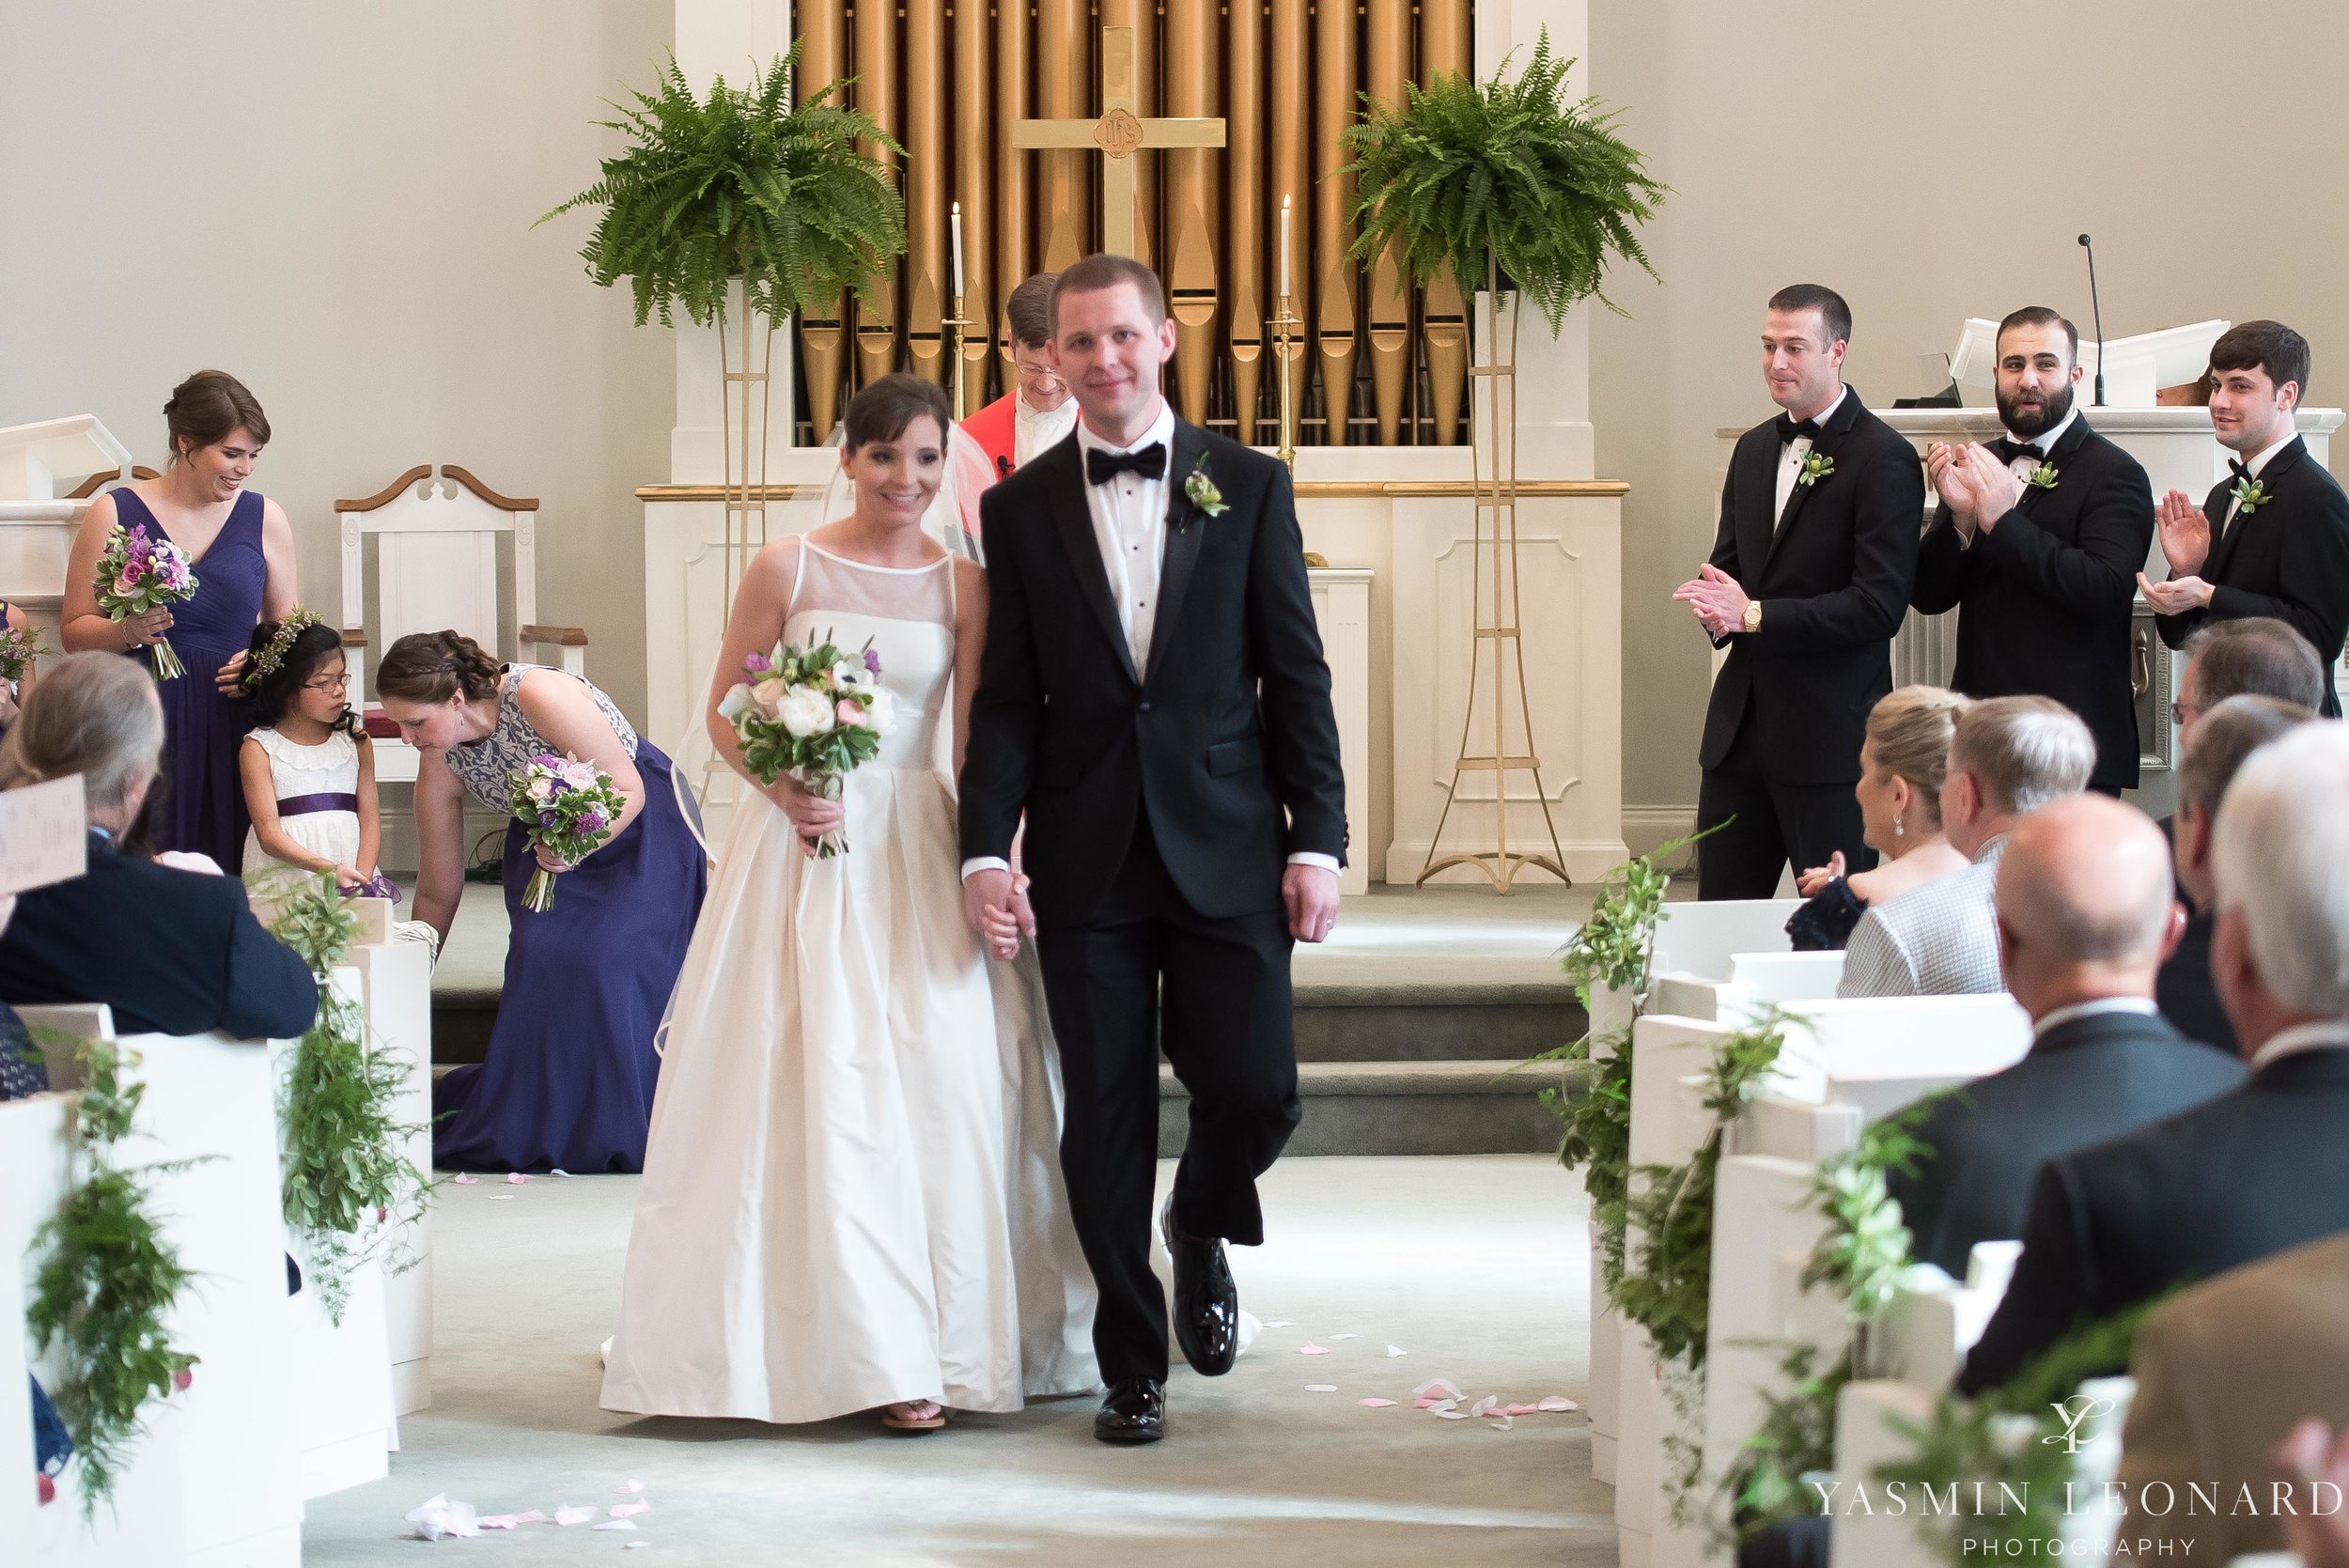 JH ADAMS INN - HIGH POINT UNIVERSITY CHAPEL WEDDING - HPU CHAPEL - HIGH POINT WEDDINGS - NC WEDDING PHOTOGRAPHER - YASMIN LEONARD PHOTOGRAPHY - HIGH POINT NC - HIGH POINT WEDDINGS -34.jpg